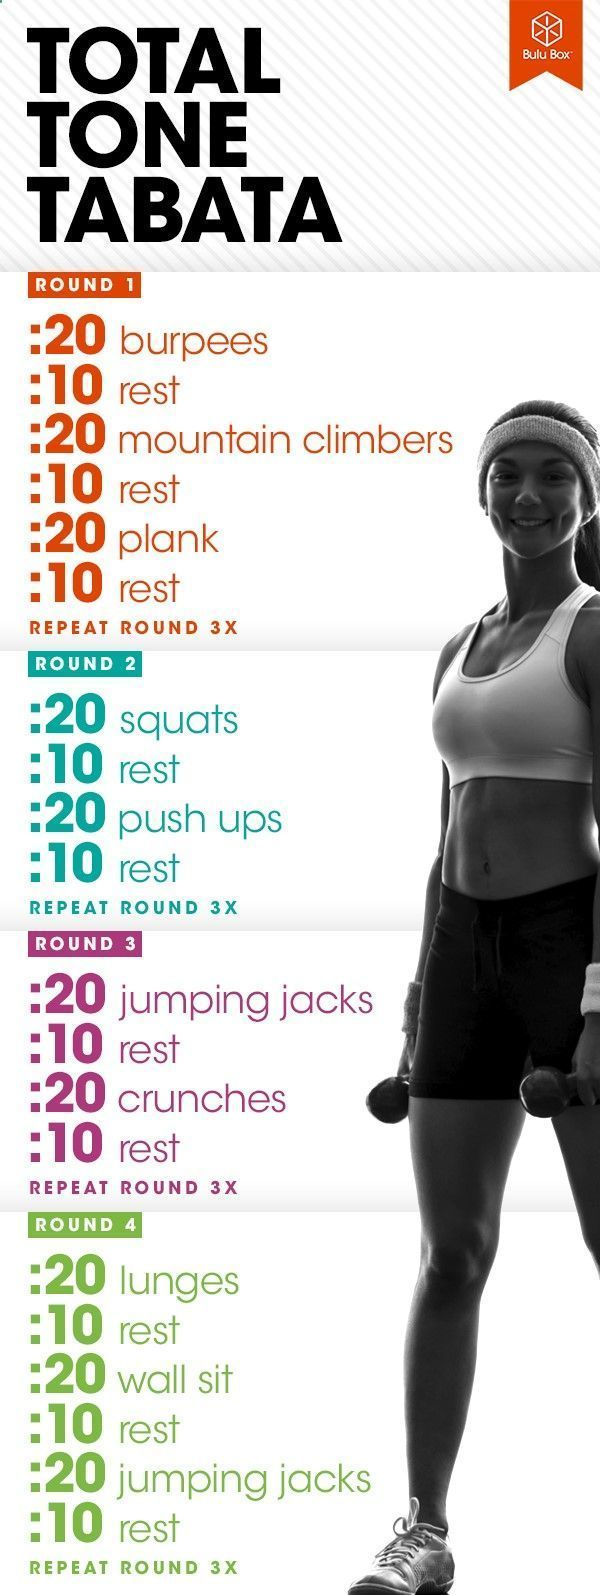 bulu_workout_total_tone_tabata #CardioWorkouts | Posted By: NewHowToLoseBellyFat.com #BellyFatTraining